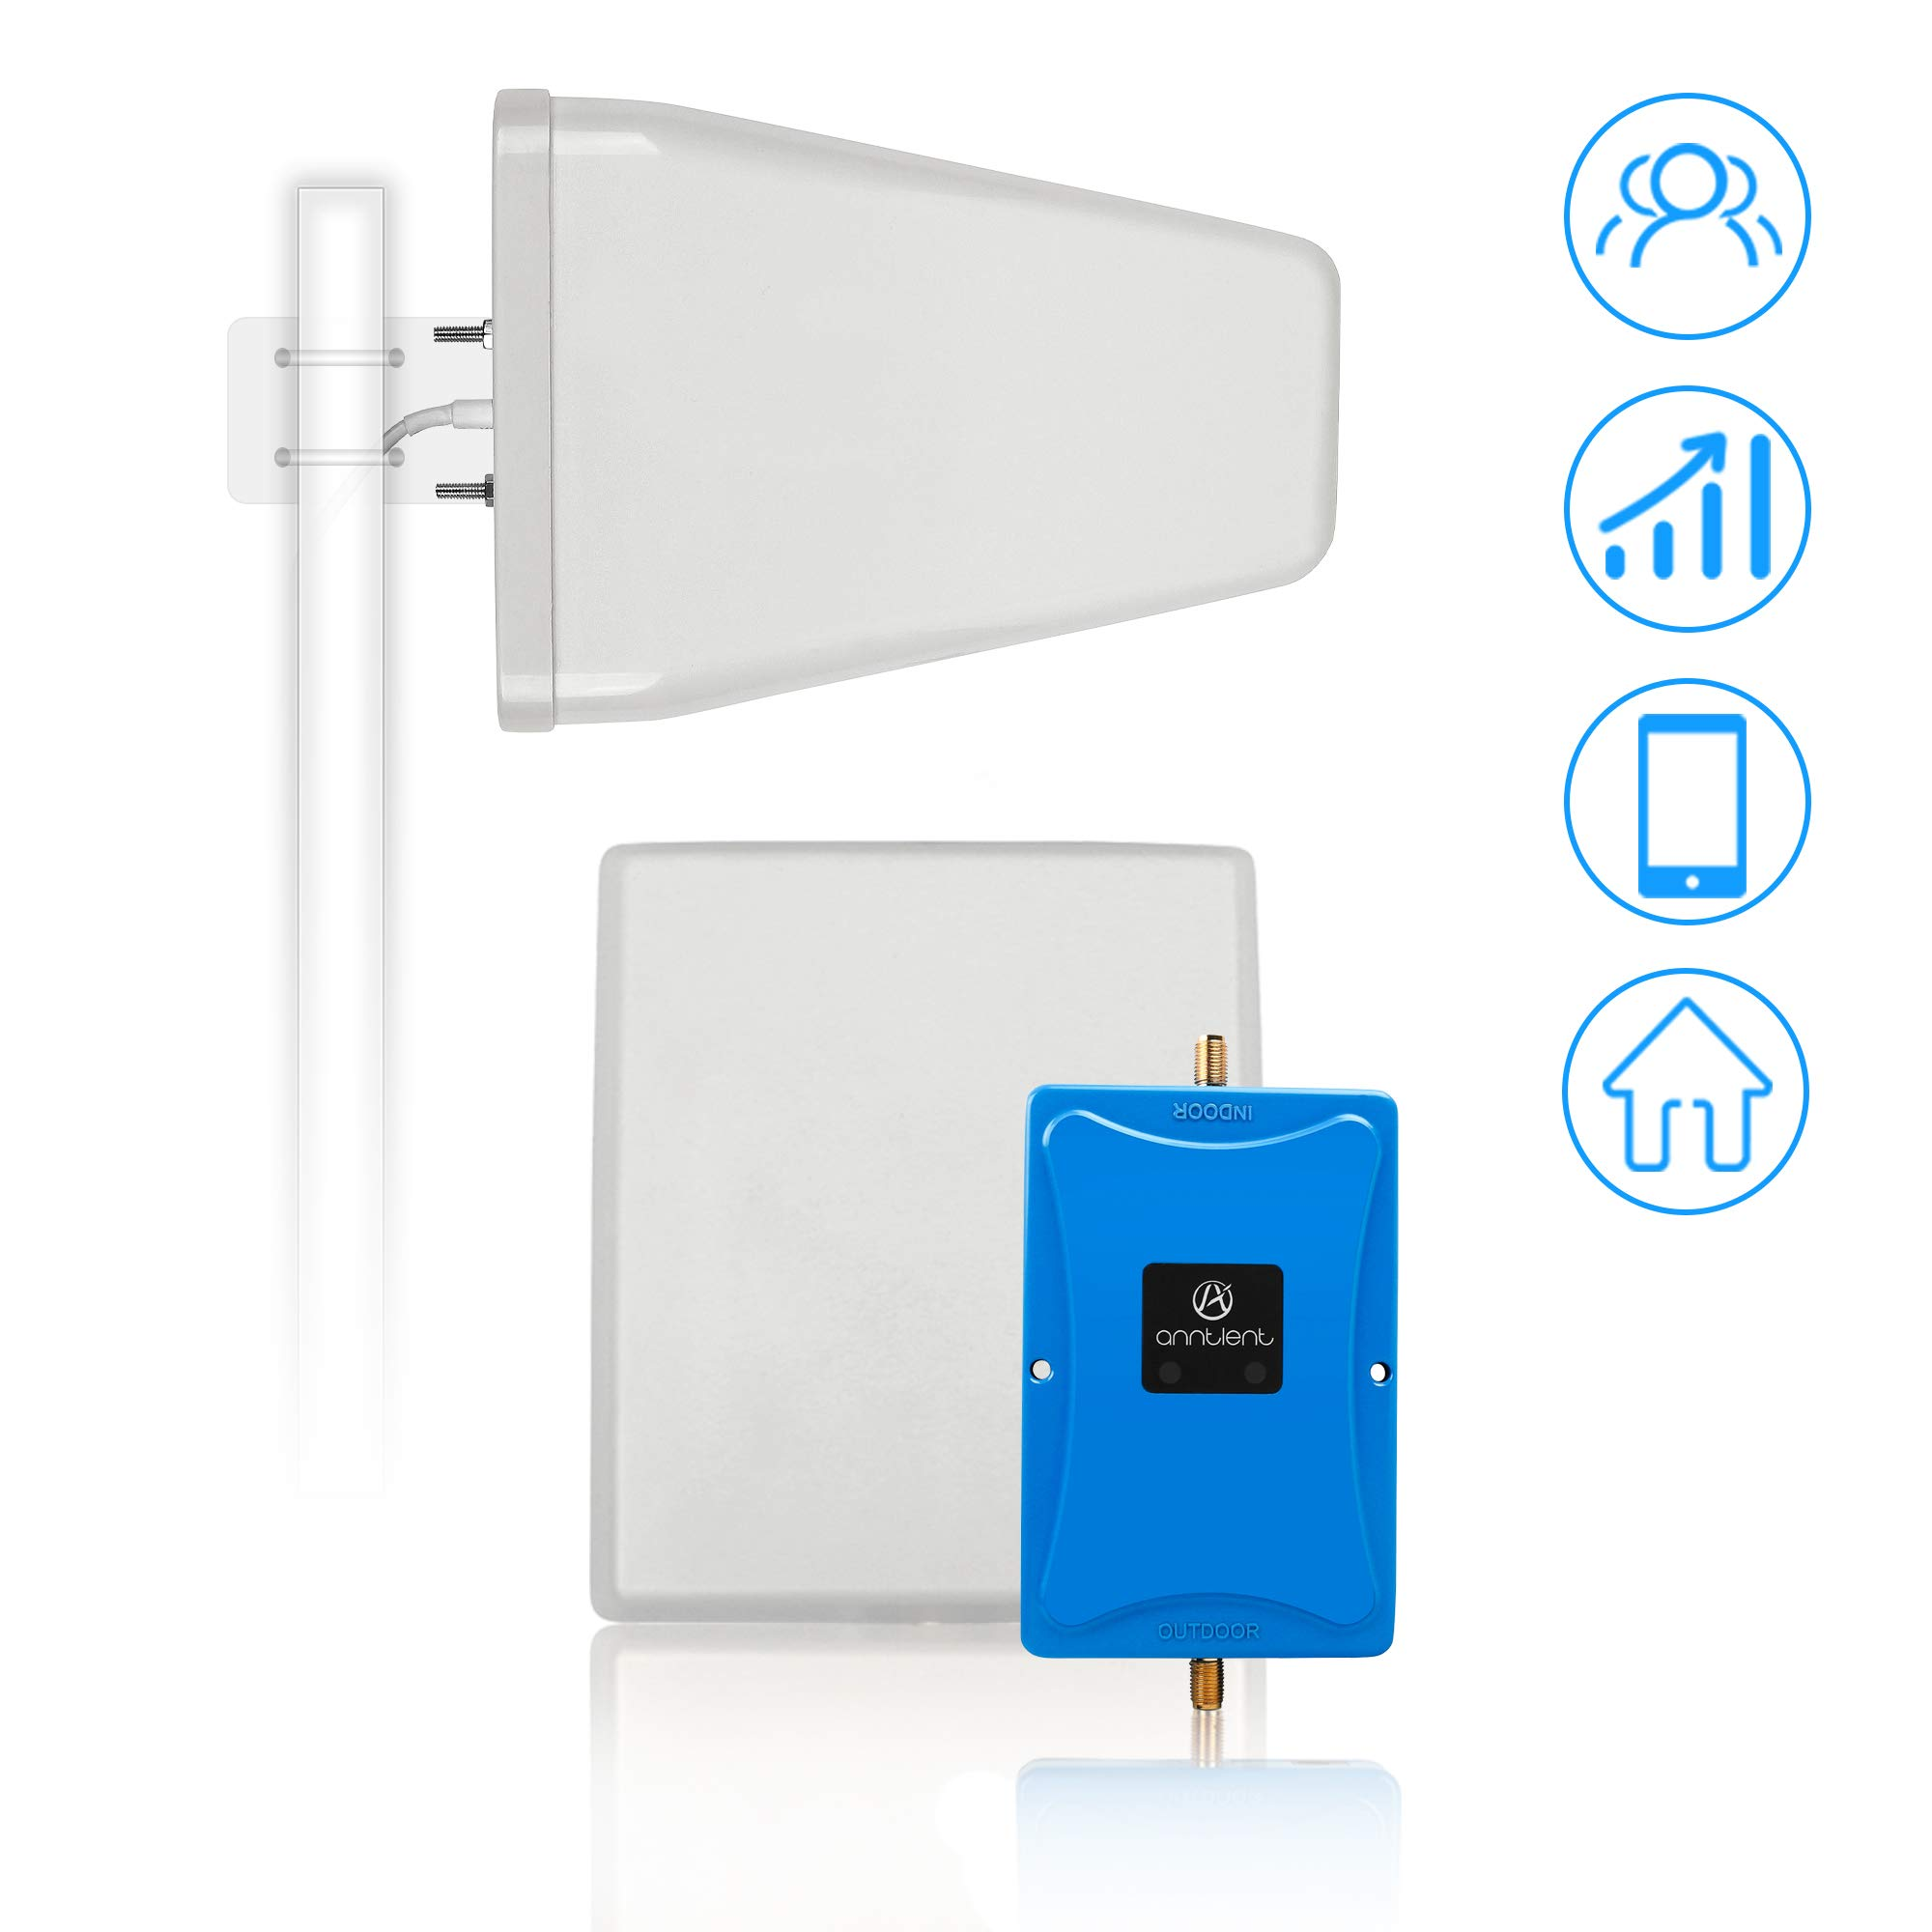 Cell Phone Signal Booster for Verizon AT&T T-Mobile 4G LTE - Dual 700MHz Band 12/13/17 Cellular Repeater Amplifier Kit Boosts Mobile Data Signal for Home and Office Up to 5,000Sq Ft Area by A ANNTLENT